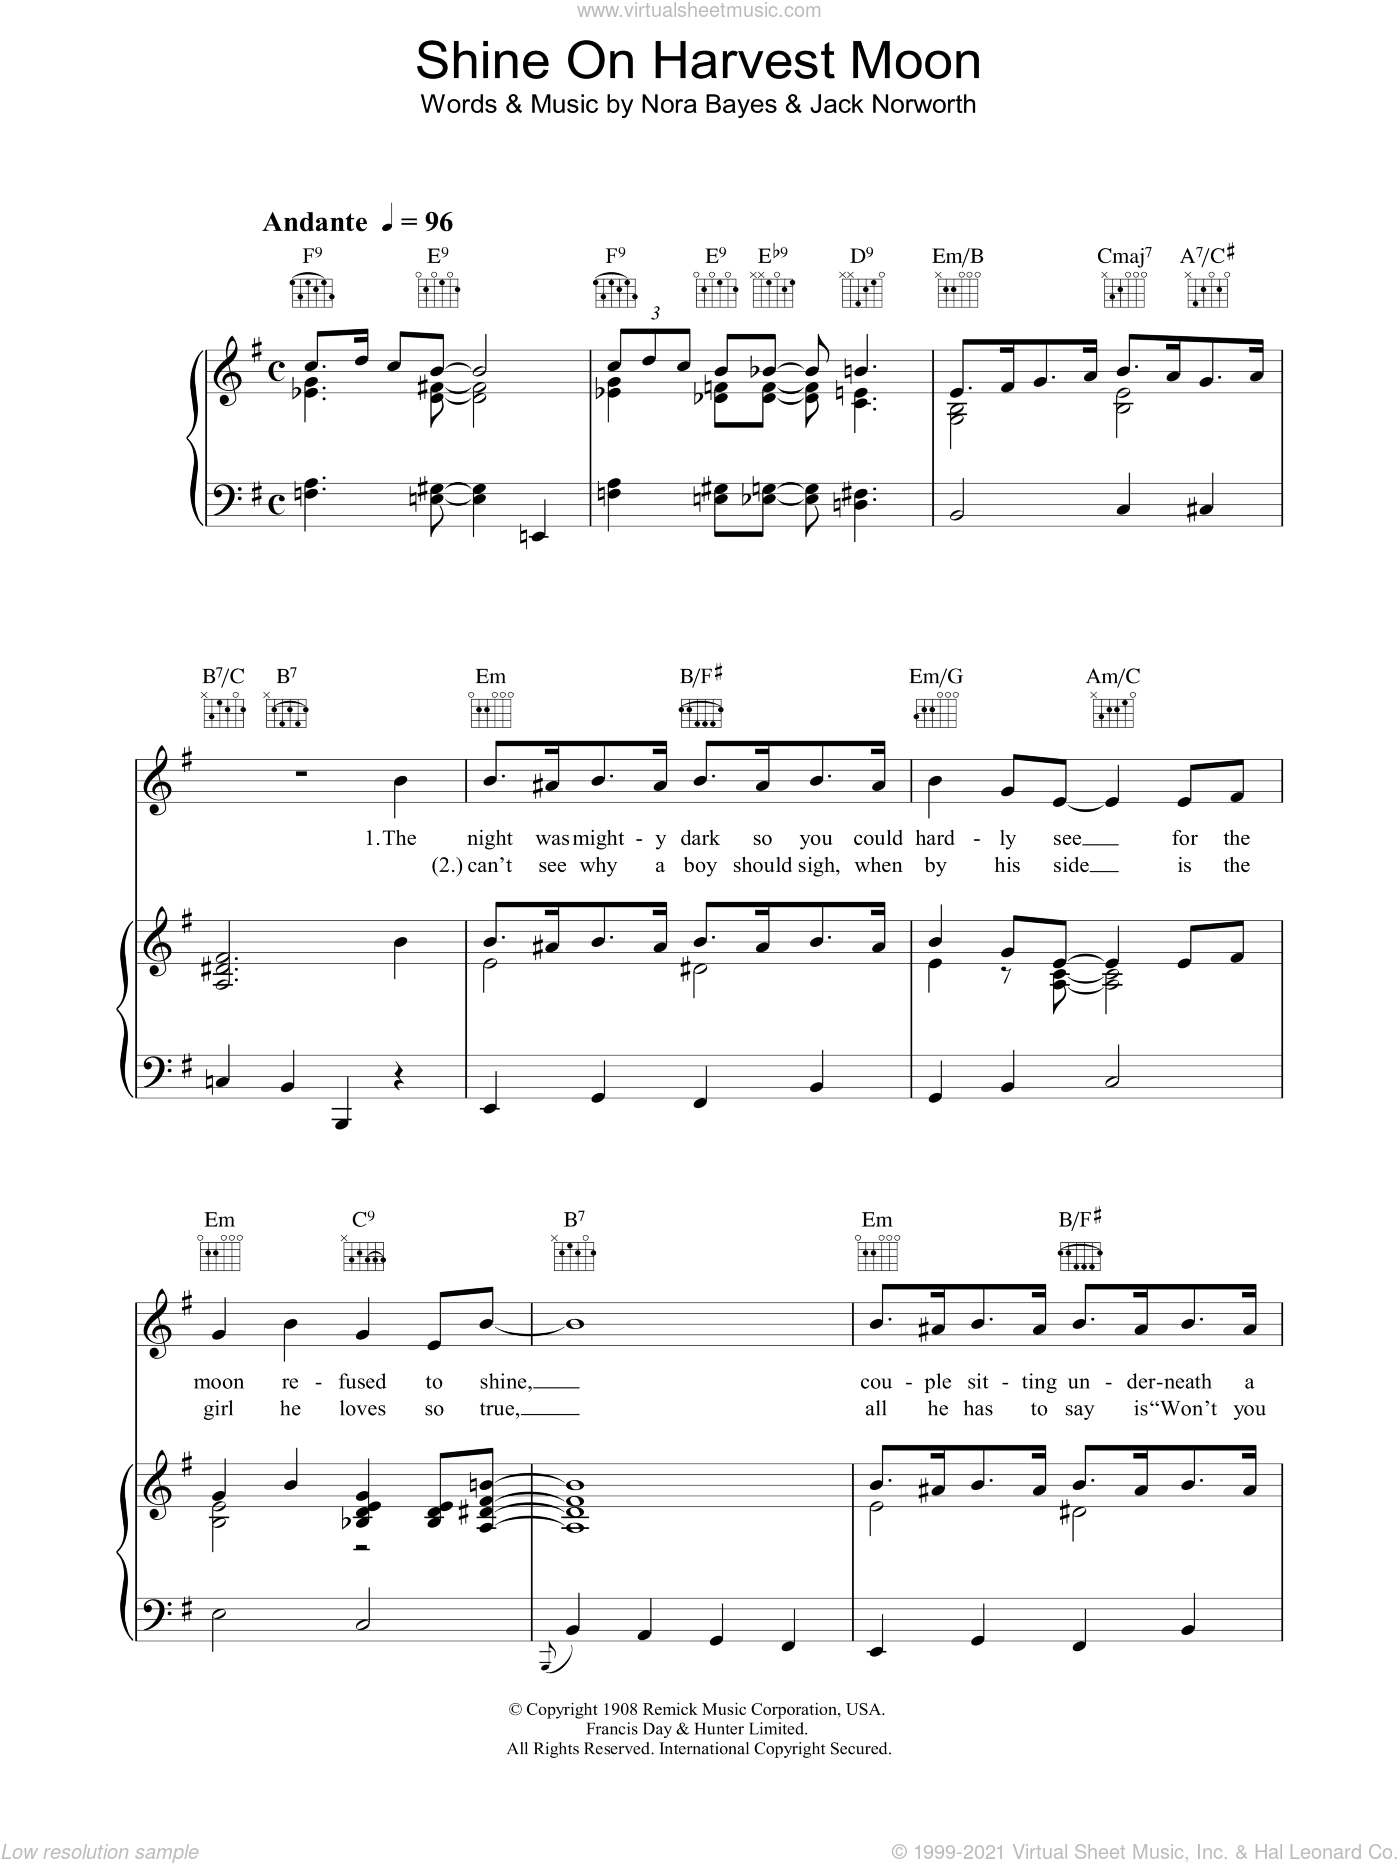 Shine On Harvest Moon sheet music for voice, piano or guitar by Nora Bayes and Jack Norworth, intermediate skill level